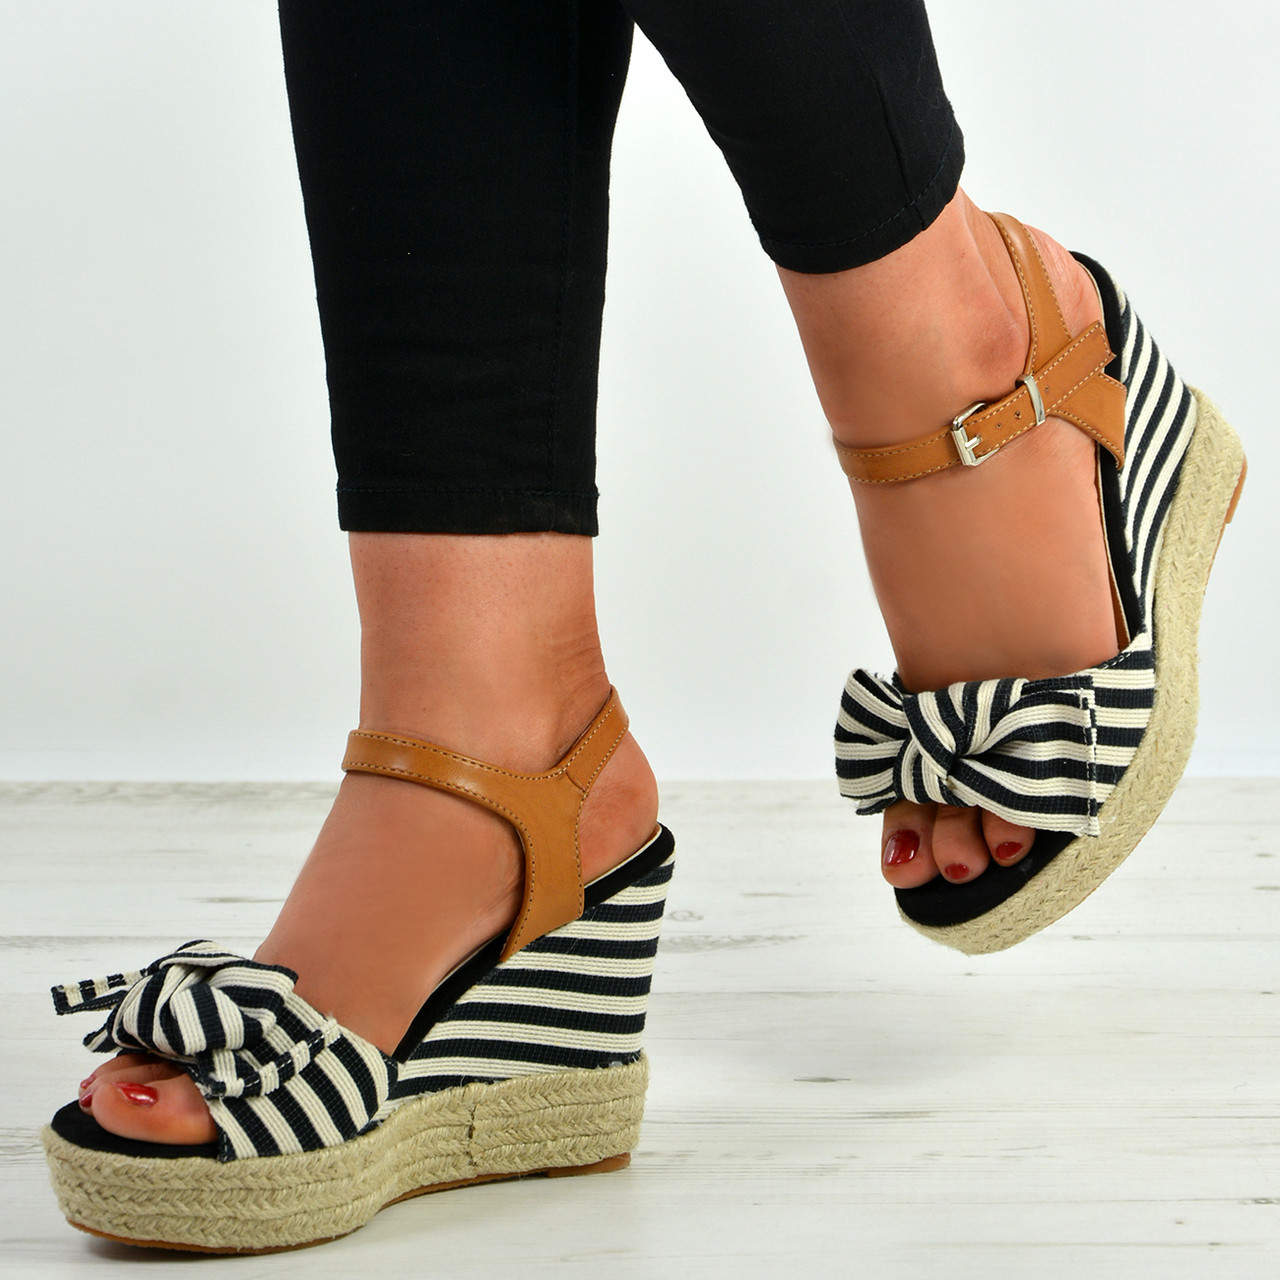 e0405e5667 New Womens Bow Espadrille Wedges High Heels Platform Ankle Strap Shoes Size